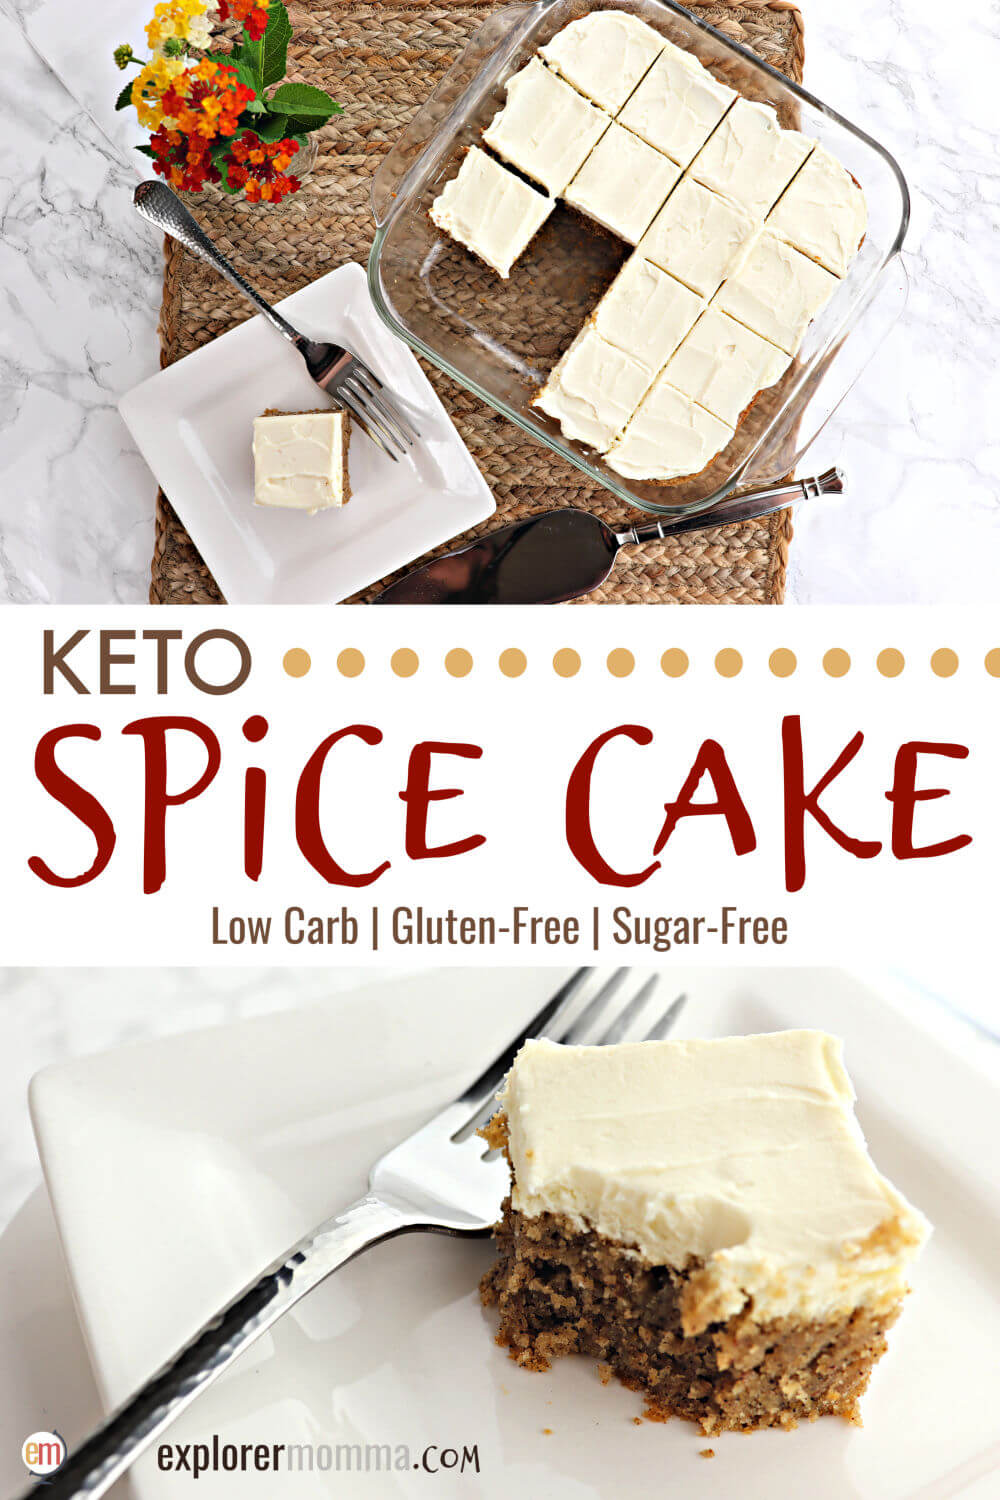 Low carb keto spice cake is deliciously moist and packed with spices. Sugar-free cream cheese frosting is the perfect touch on this popular moist gluten-free cake ideal for a keto diet. #ketocake #ketodesserts #ketorecipes #lowcarbcake